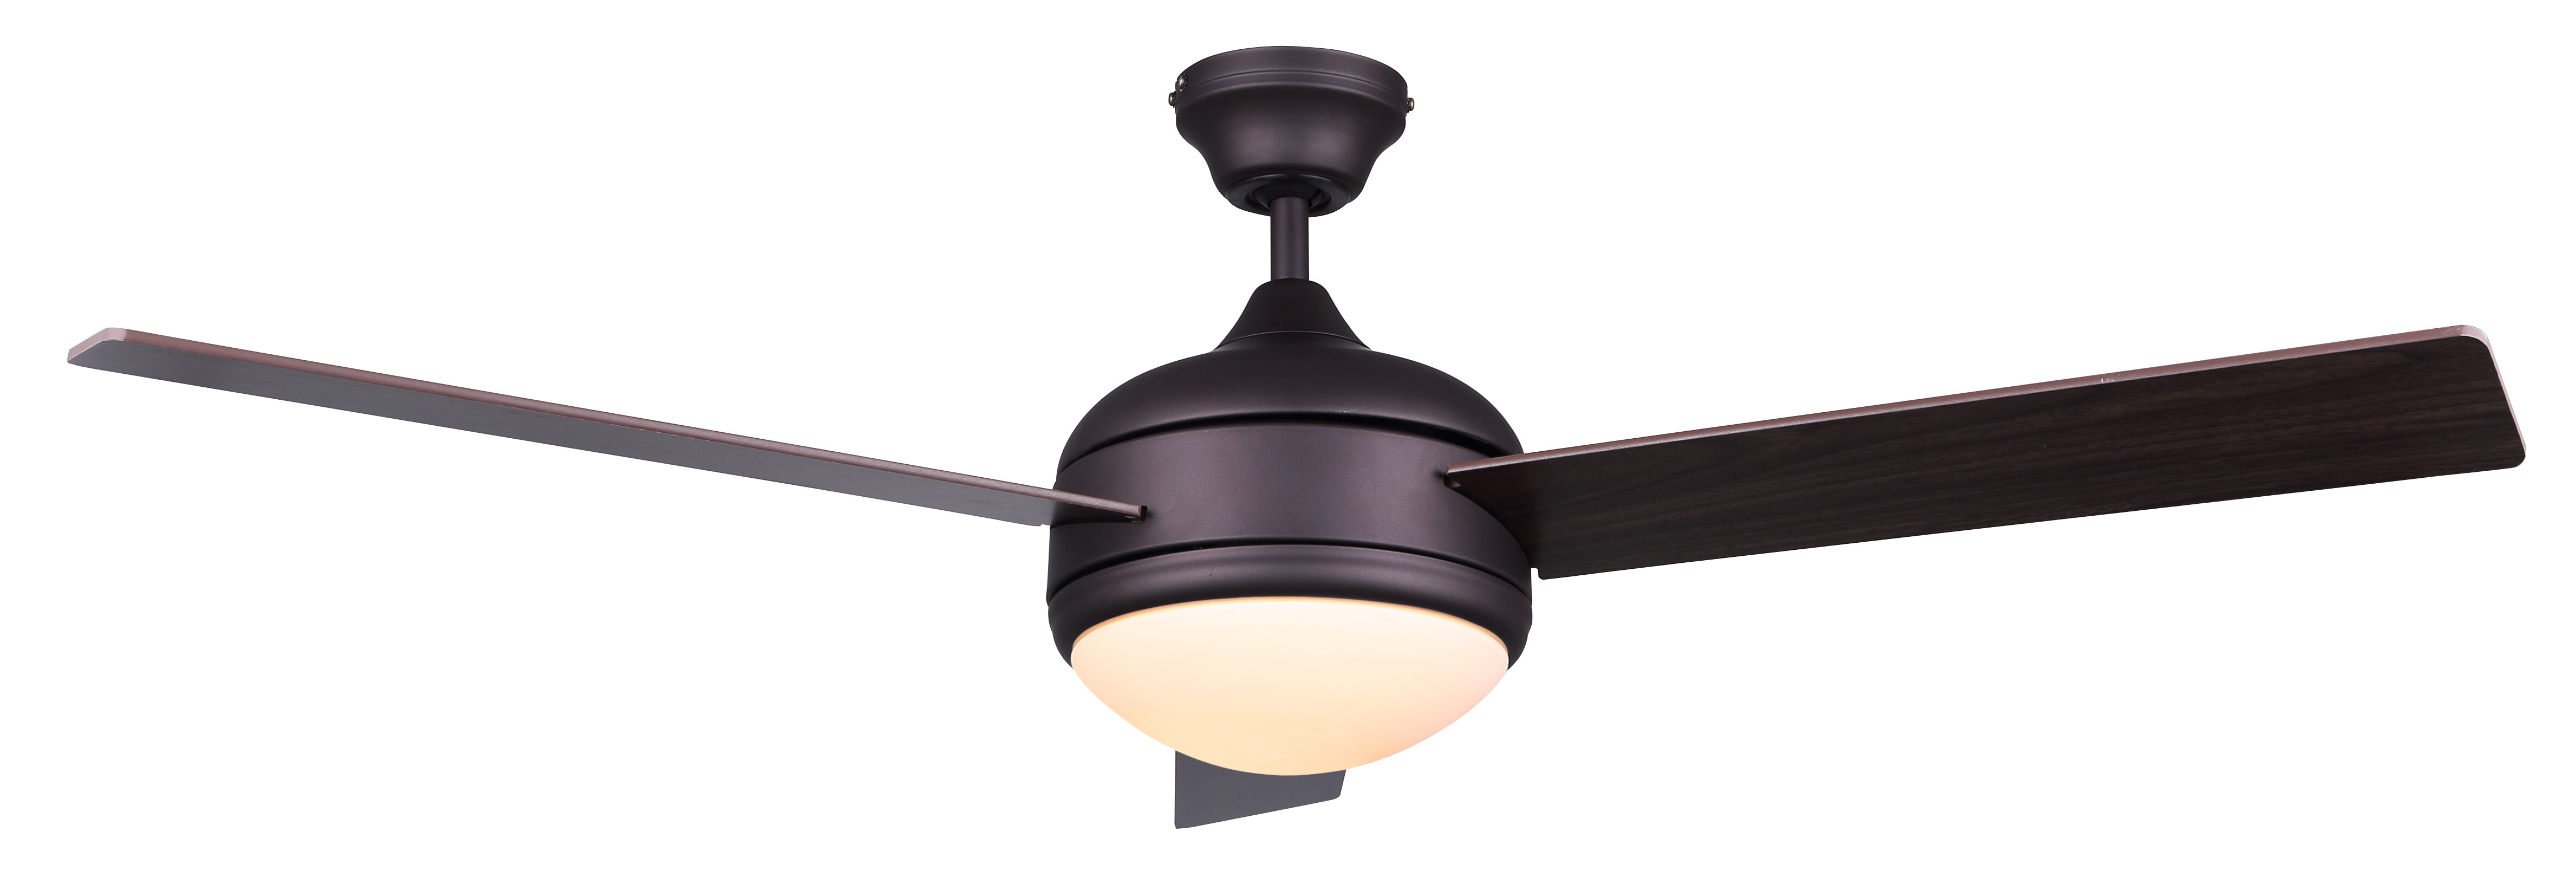 for fans with astonishing outdoor remote lighting decorating breathtaking lights light led style fan low universal flat menards pr astounding improvement flush design ceiling mount magnificent home